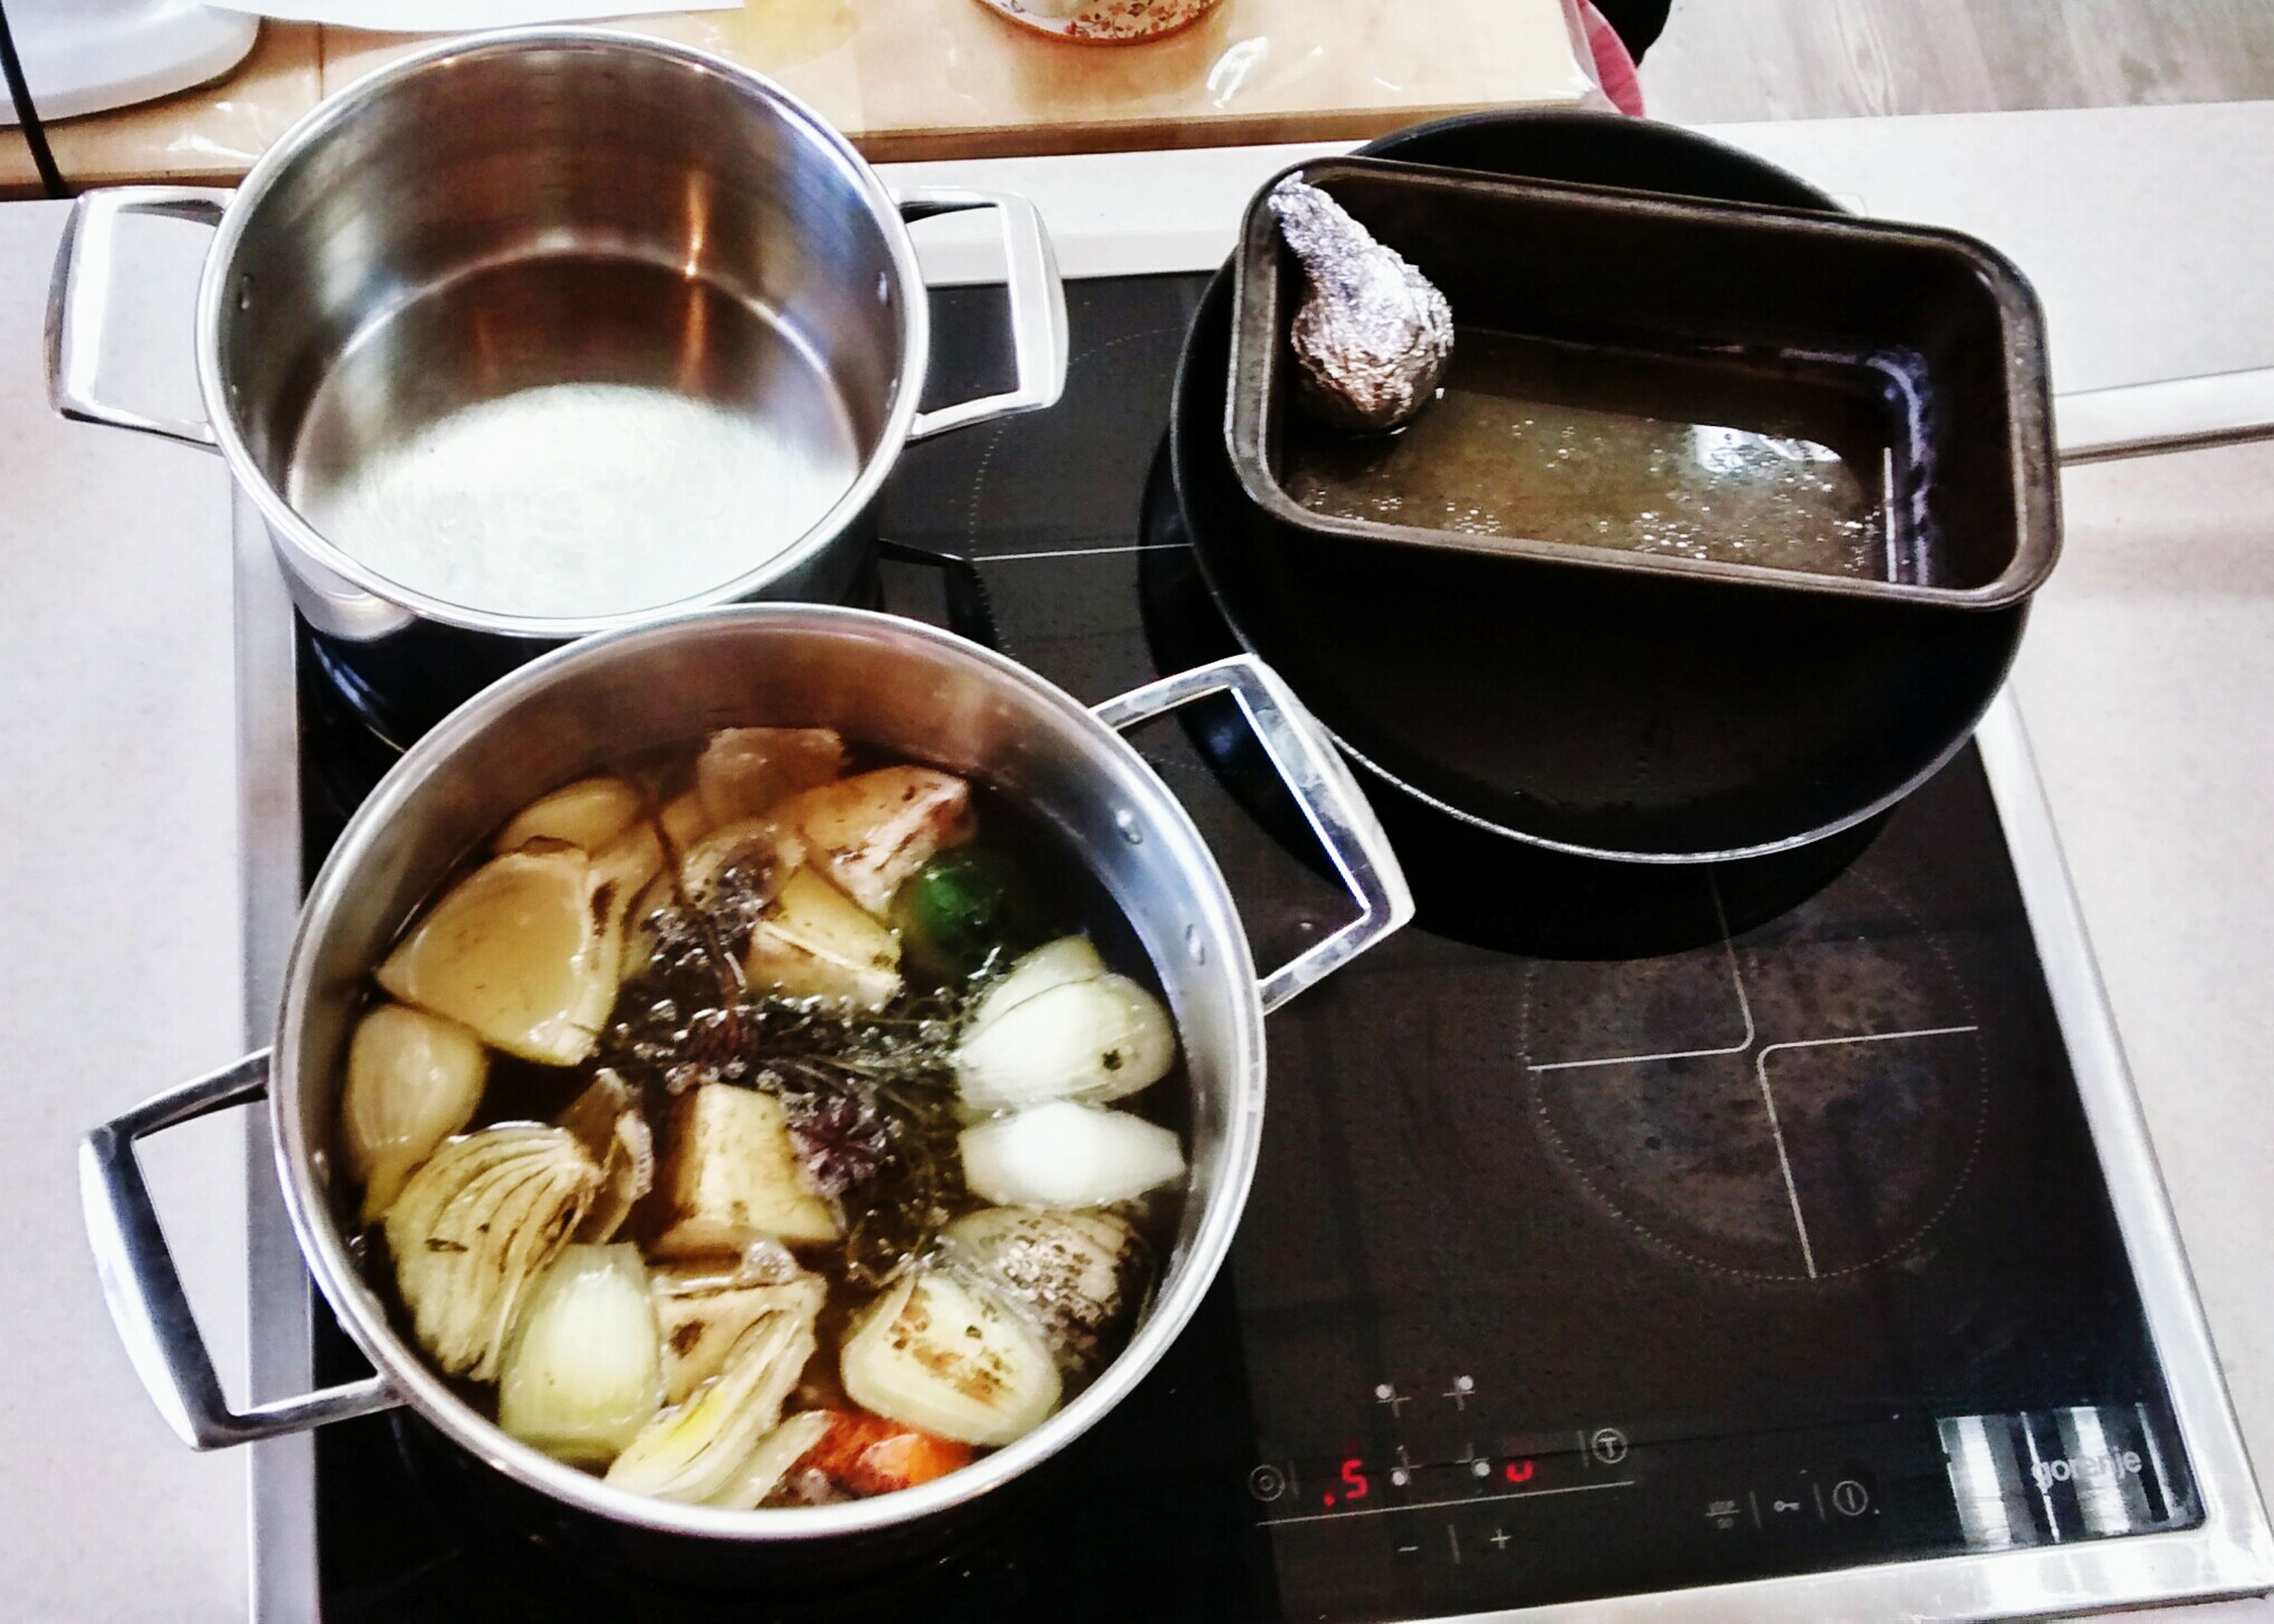 food and drink, food, indoors, freshness, plate, table, healthy eating, still life, ready-to-eat, high angle view, spoon, preparation, cooking, drink, meal, bowl, meat, domestic kitchen, cooking pan, fork